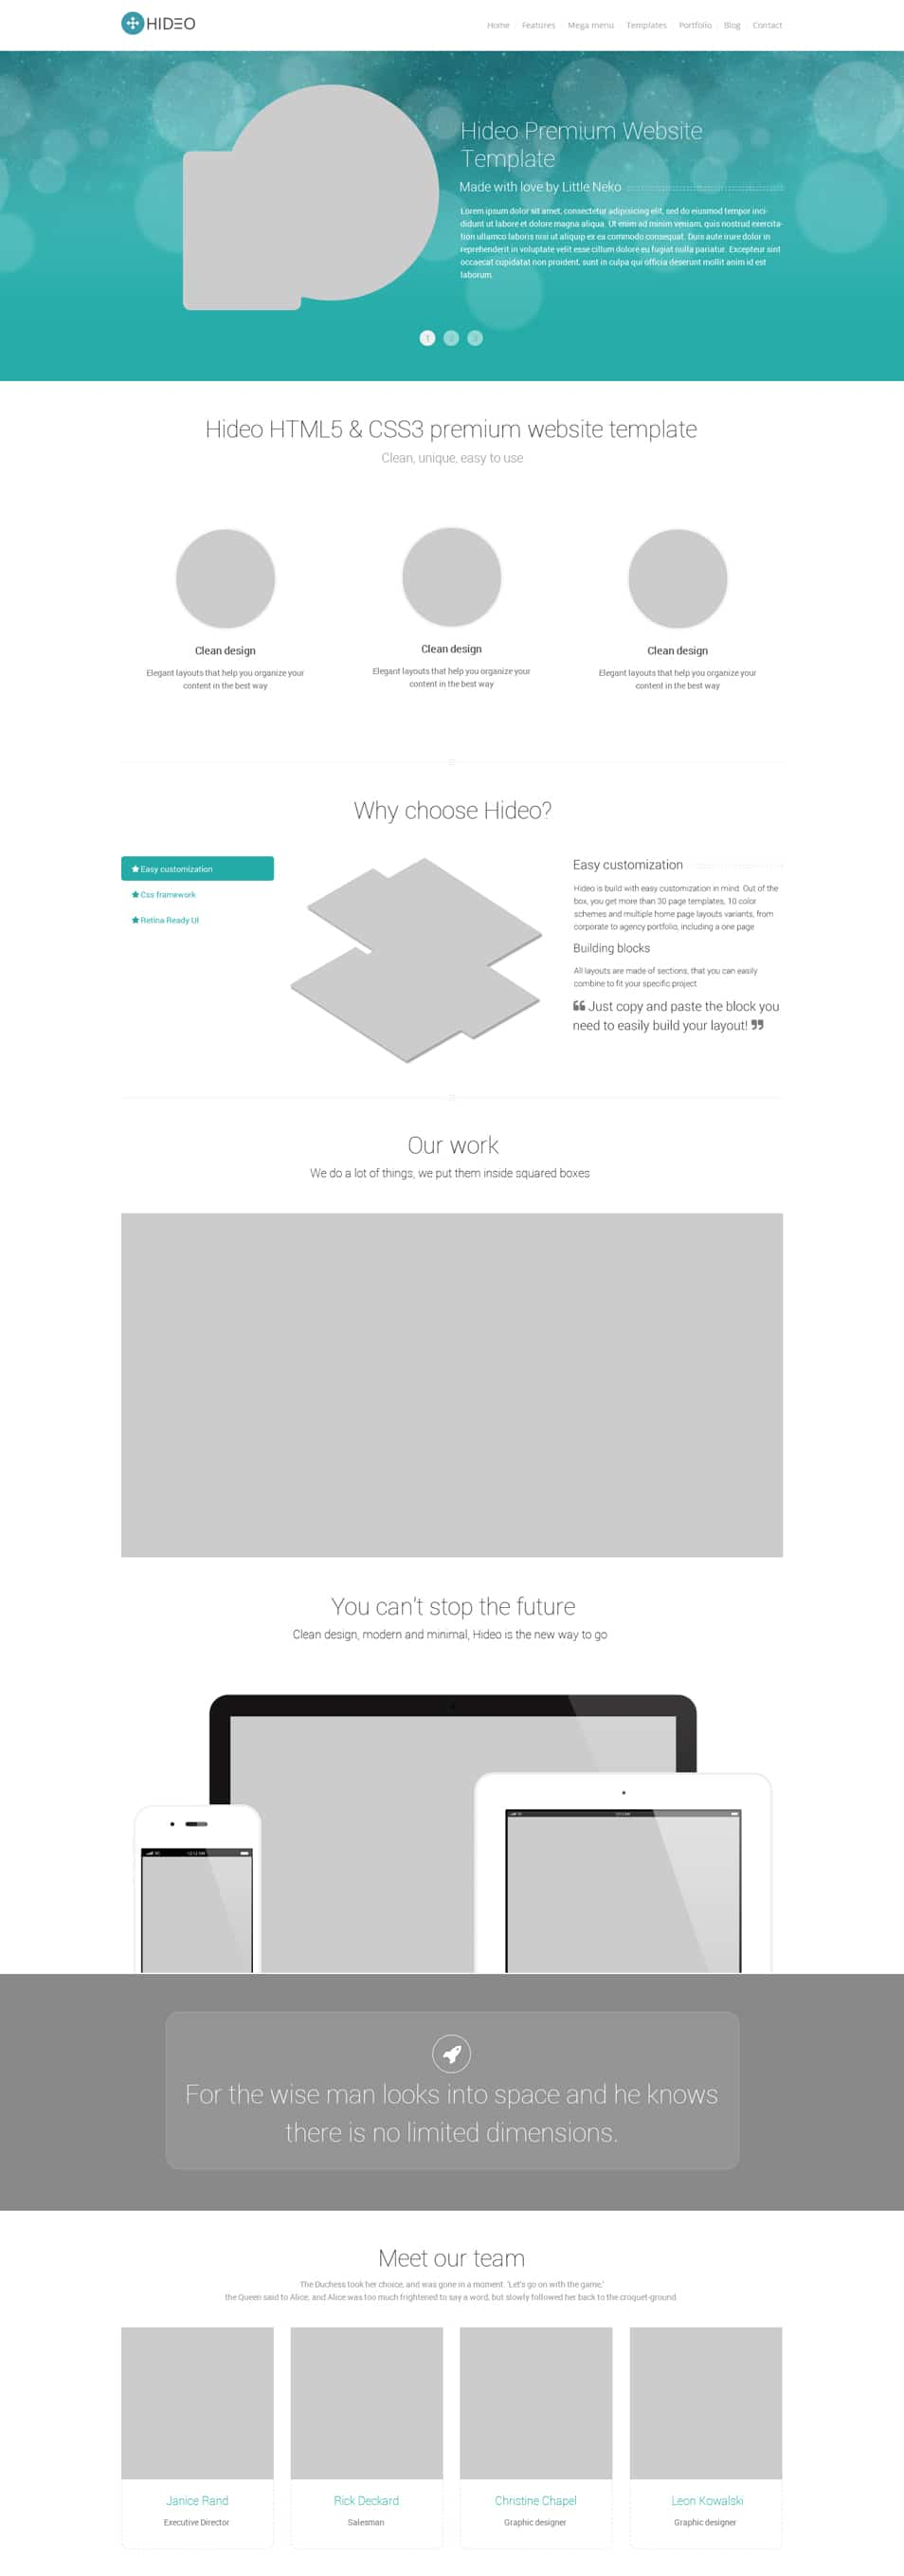 Hideo-Website-Template-PSD